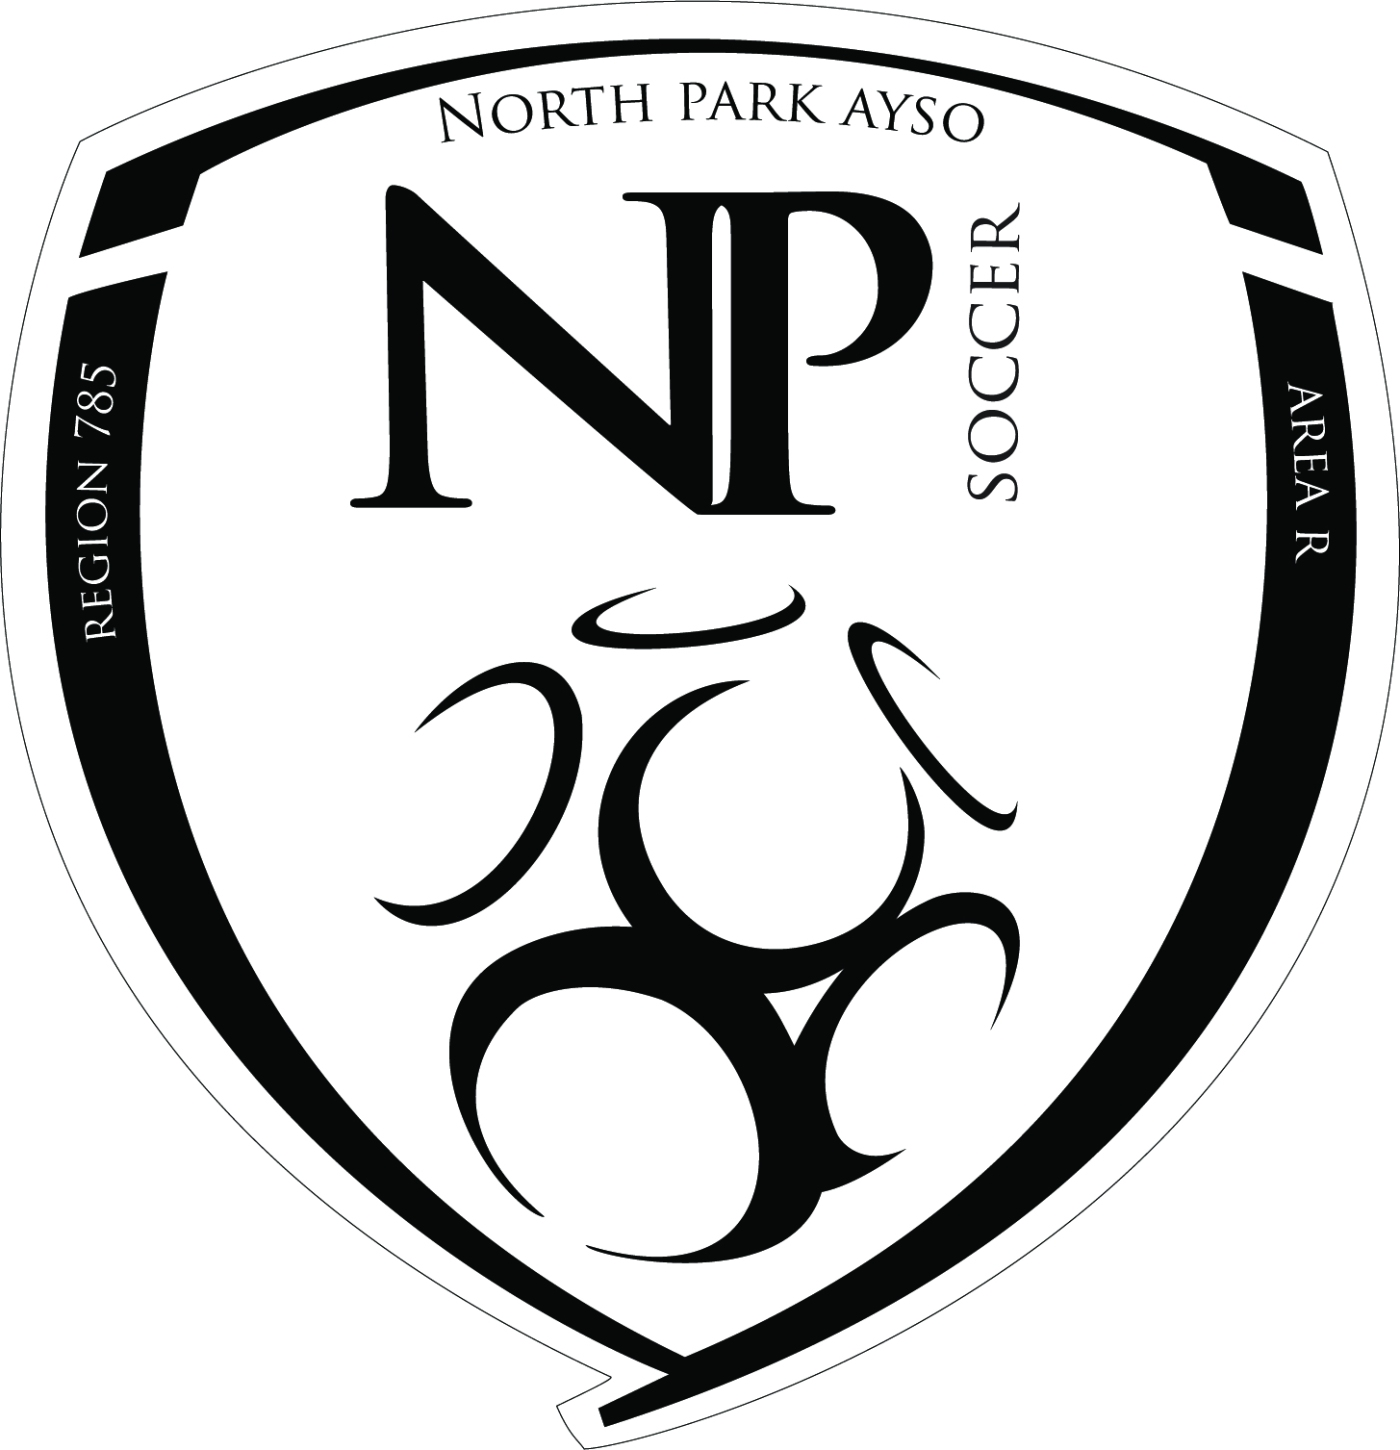 ayso_northpark_logo_revised